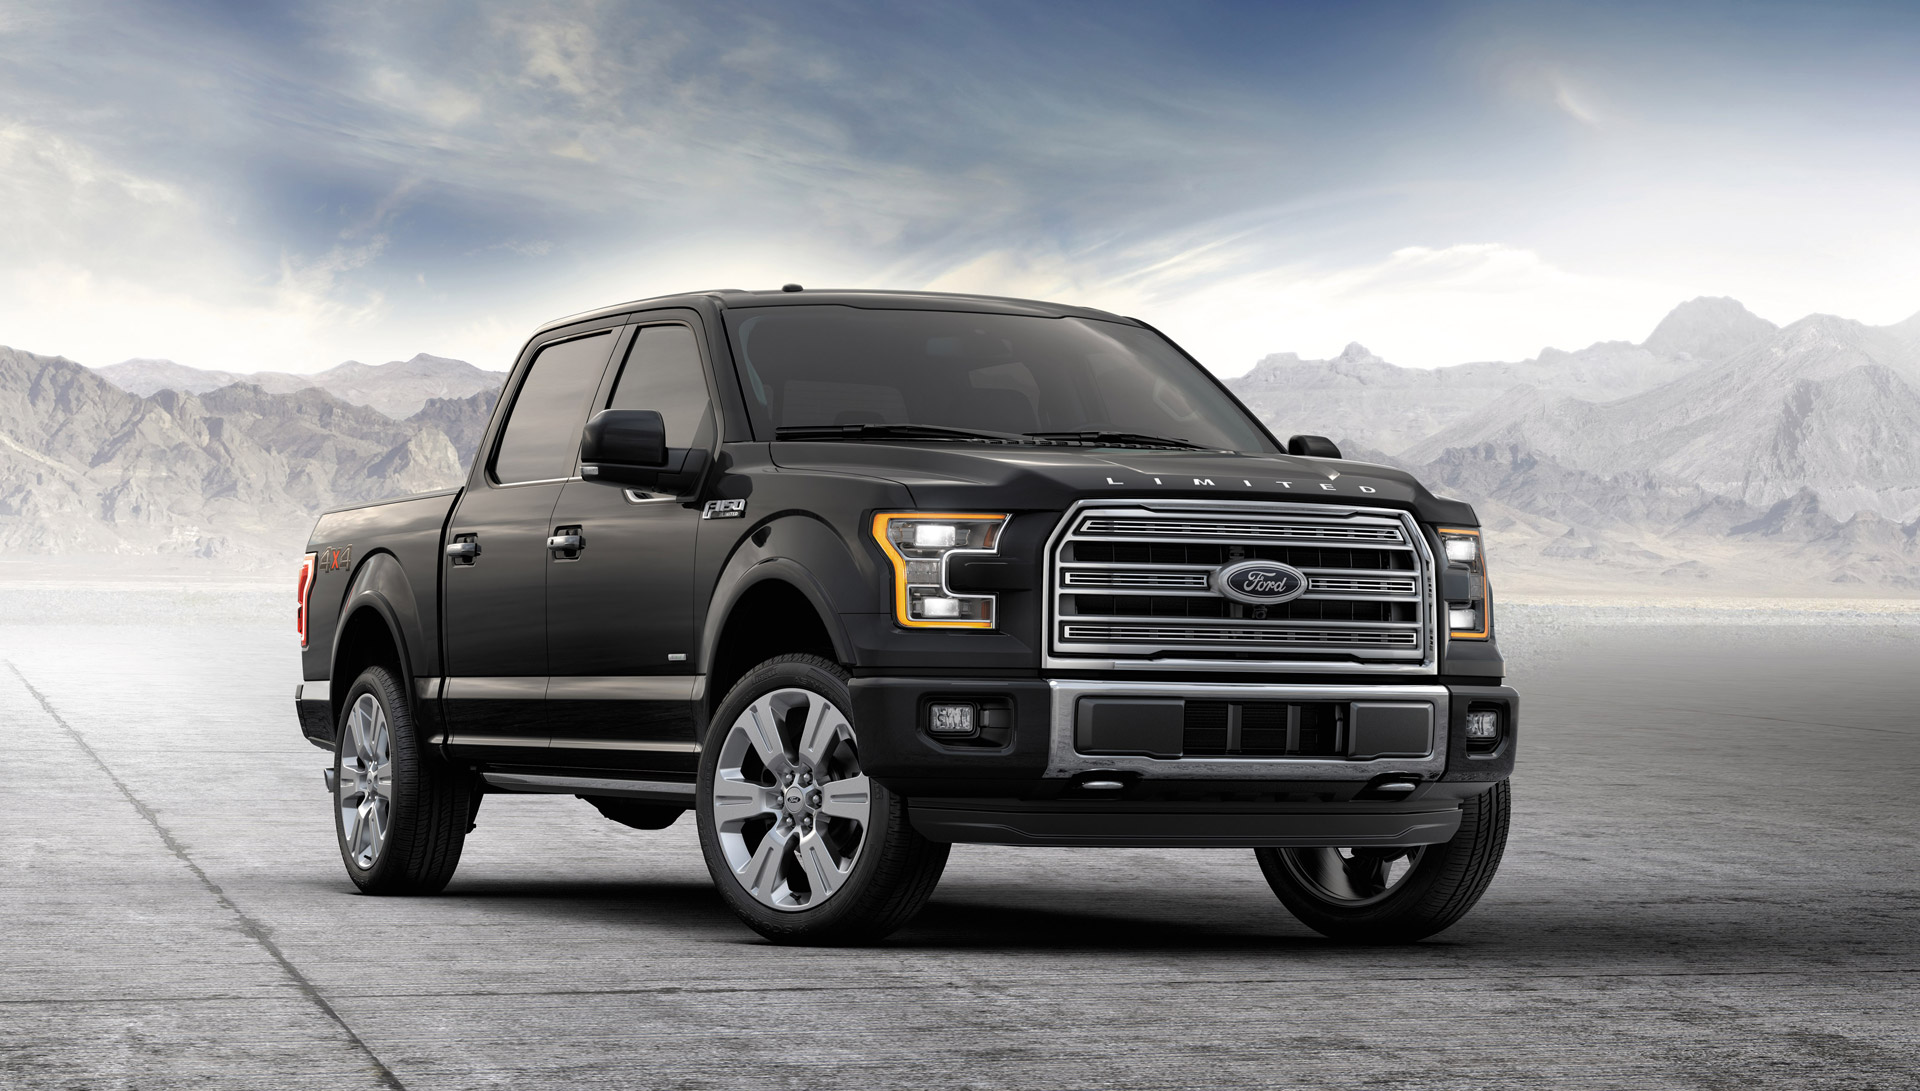 Ford f 150 diesel may beat ram ecodiesel for fuel efficiency report